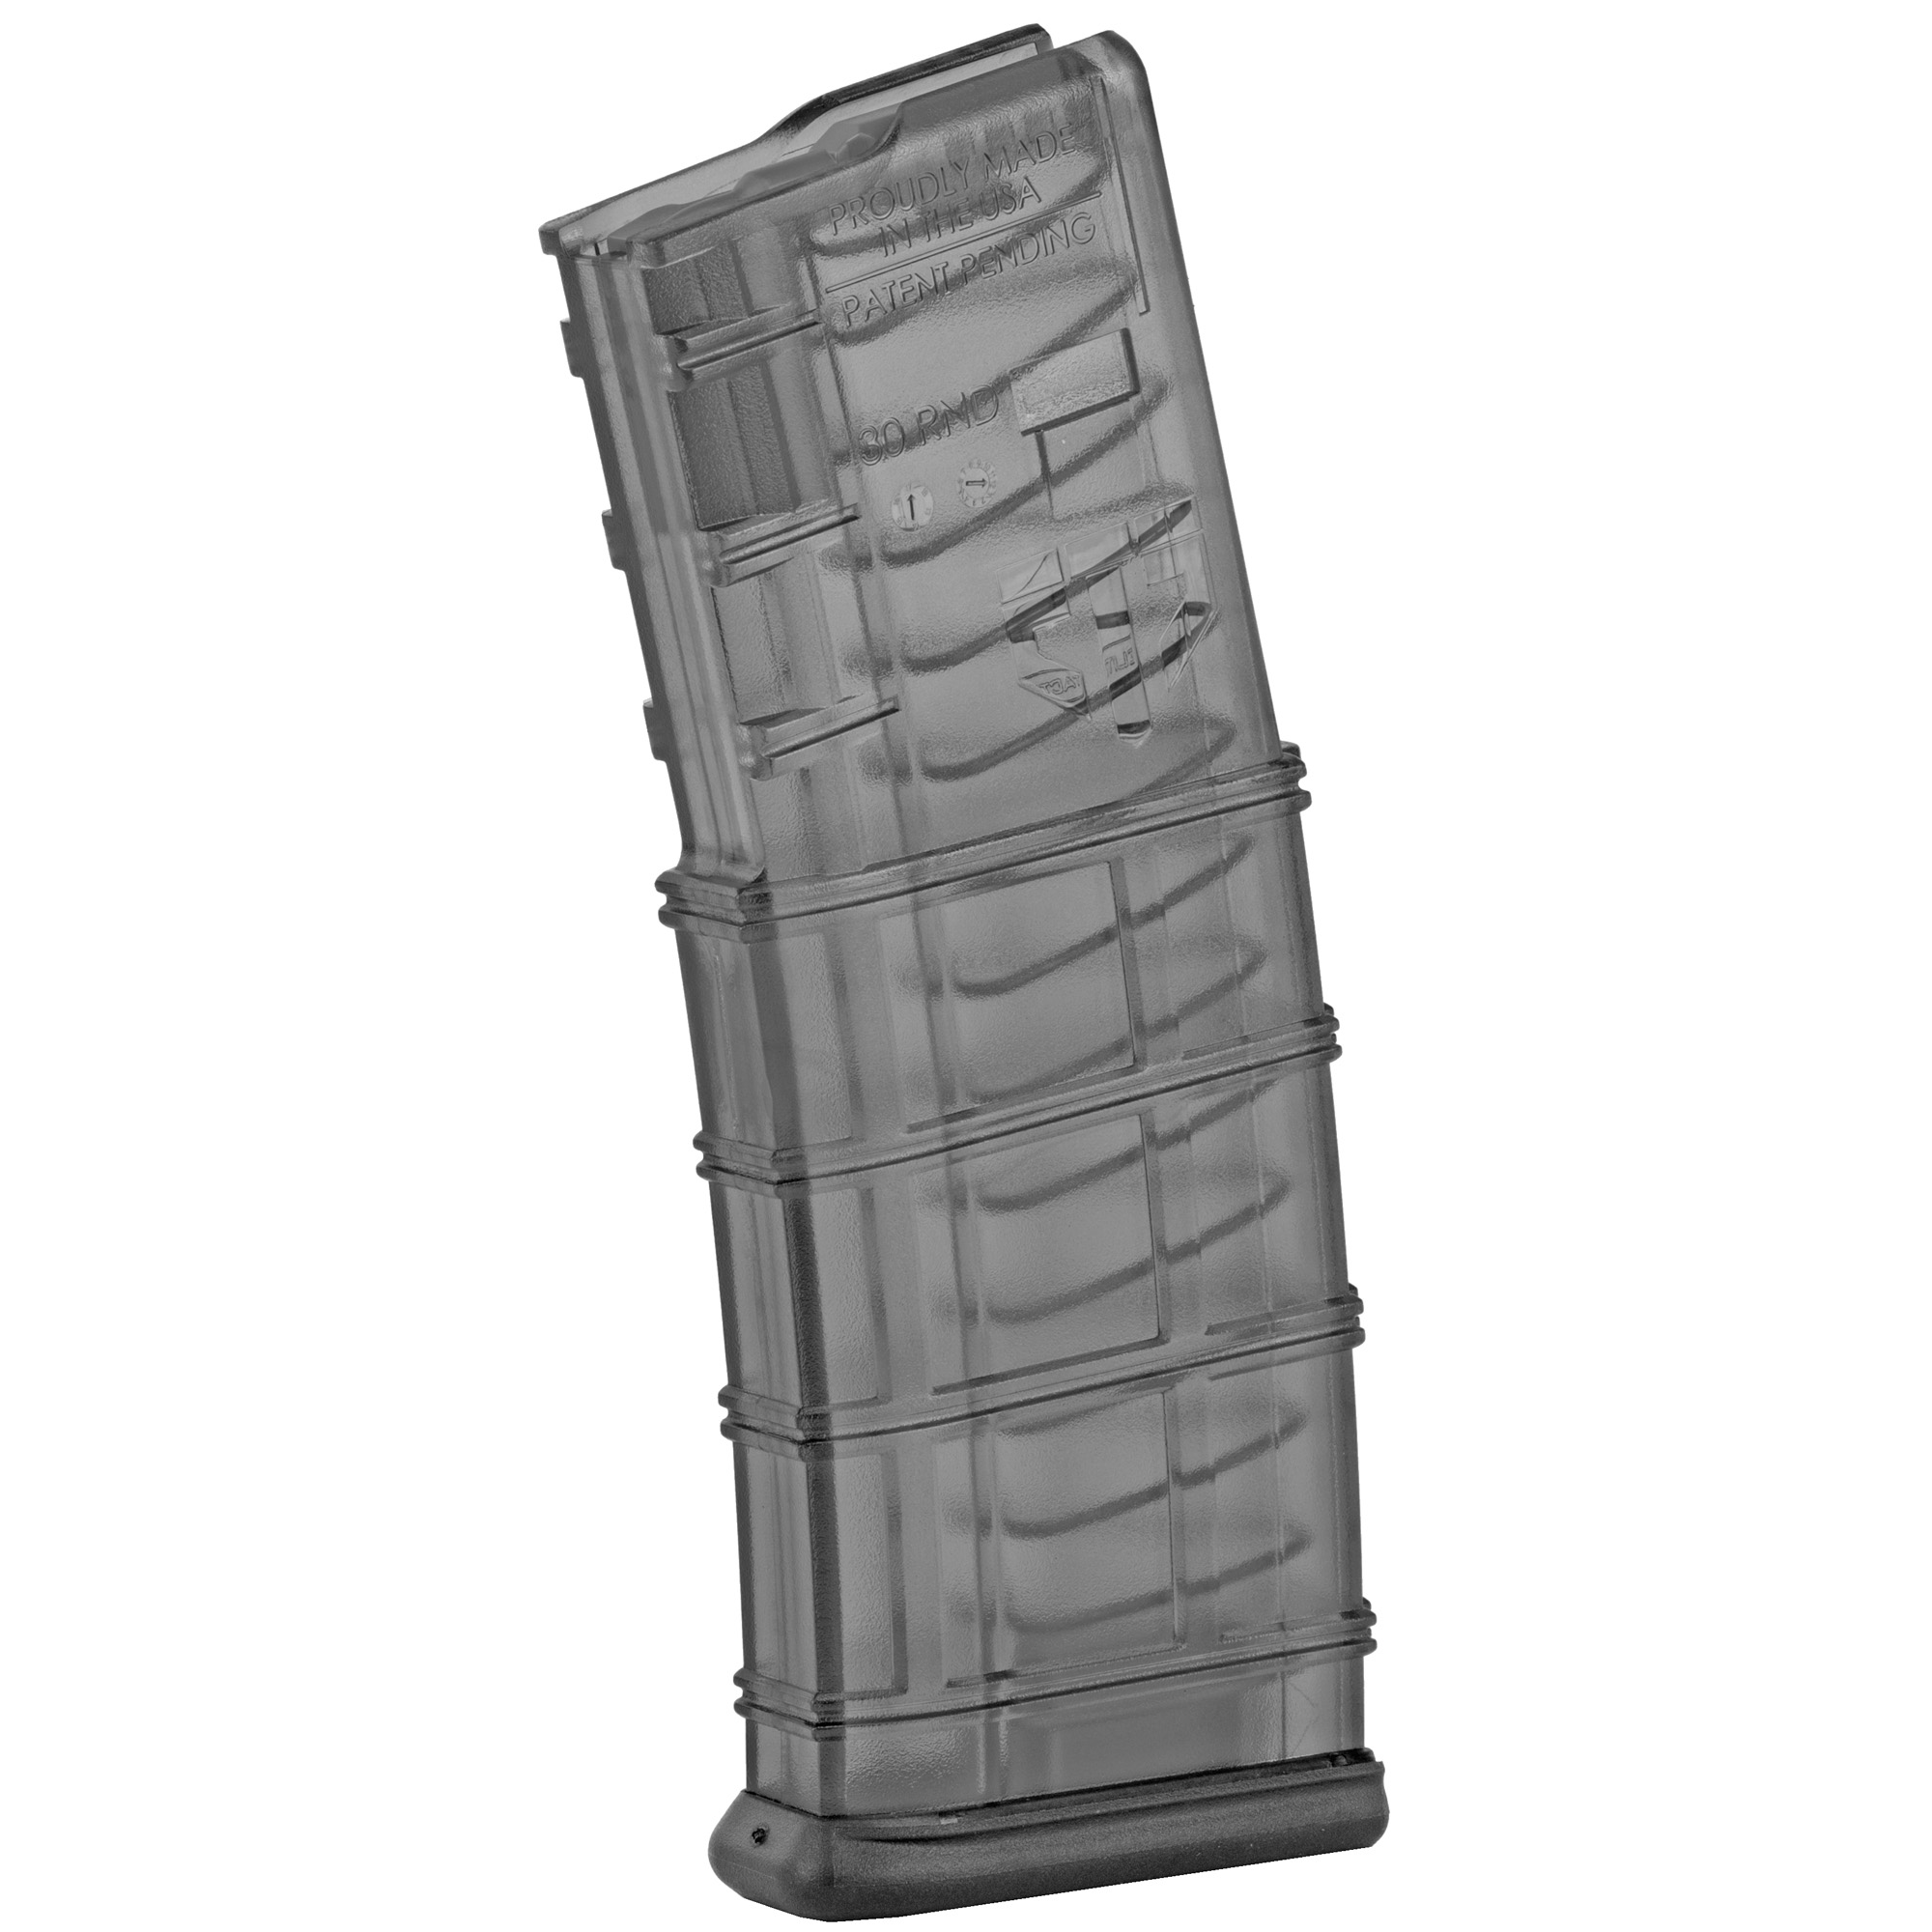 """This ETS AR-15 magazine features extreme impact resistance"""" a No-Tilt follower"""" and a translucent body that allows you to see your ammo count and type. The ergonomically designed floorplate makes it easy to grab from mag pouches."""